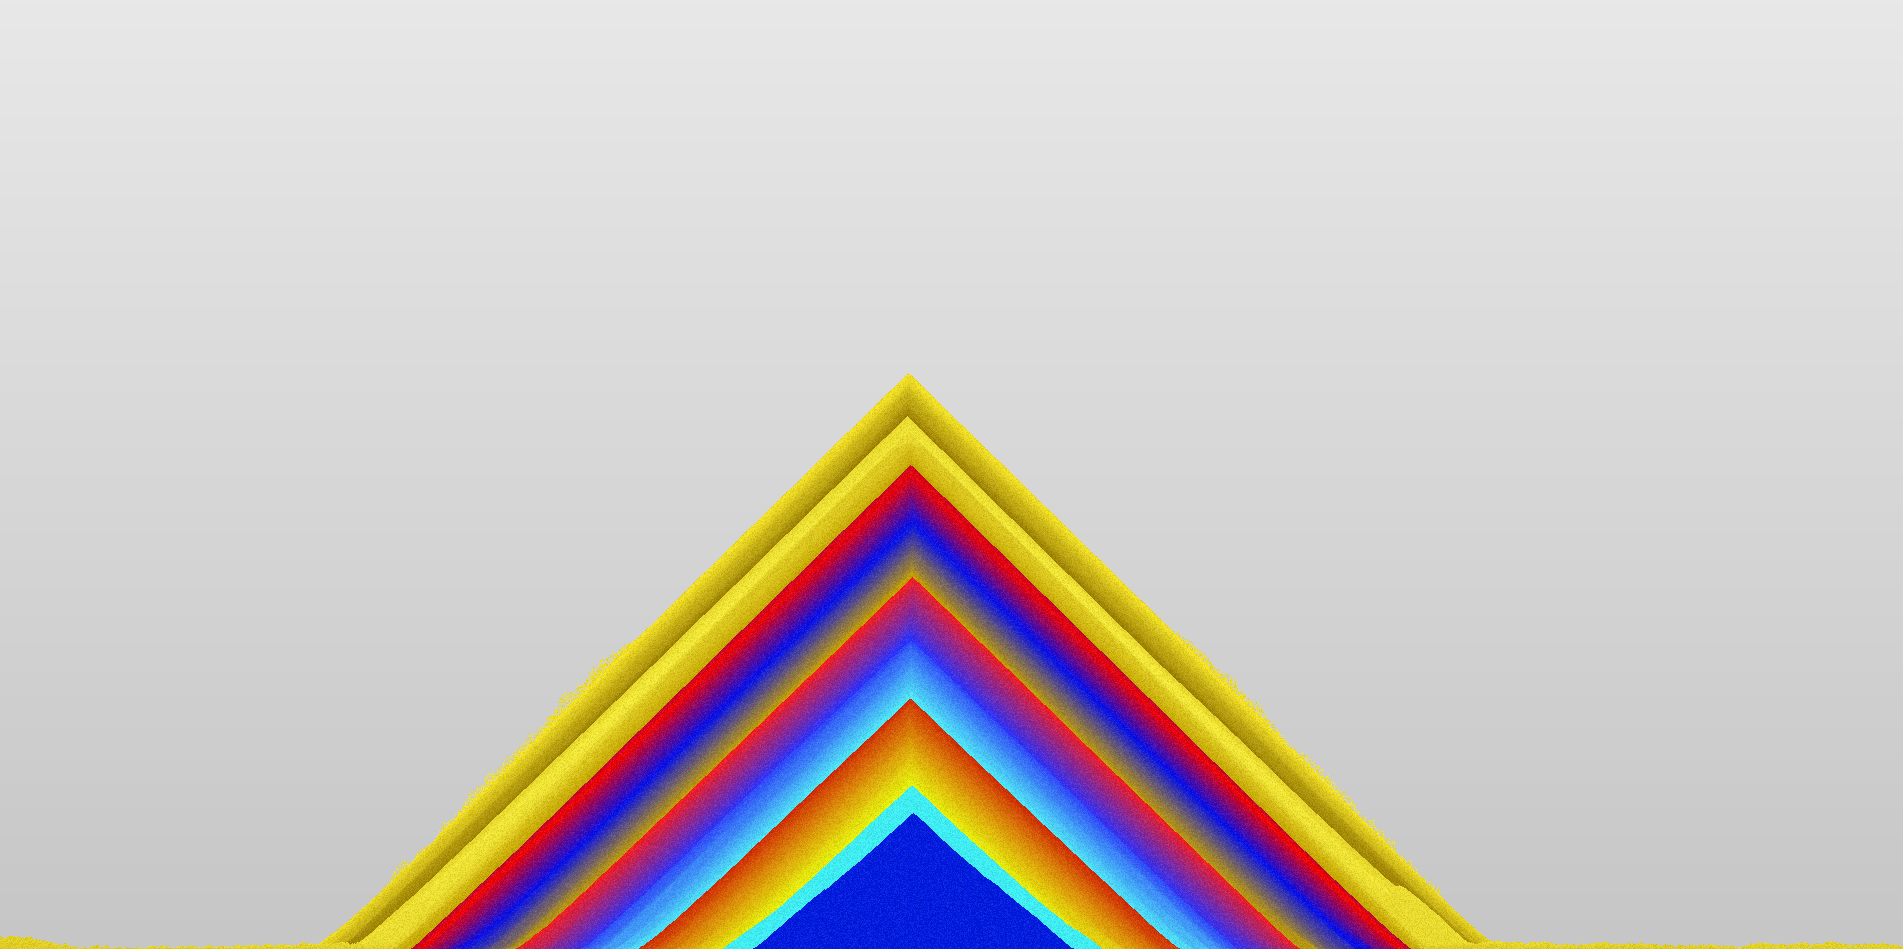 Triangles of MythicalMaster